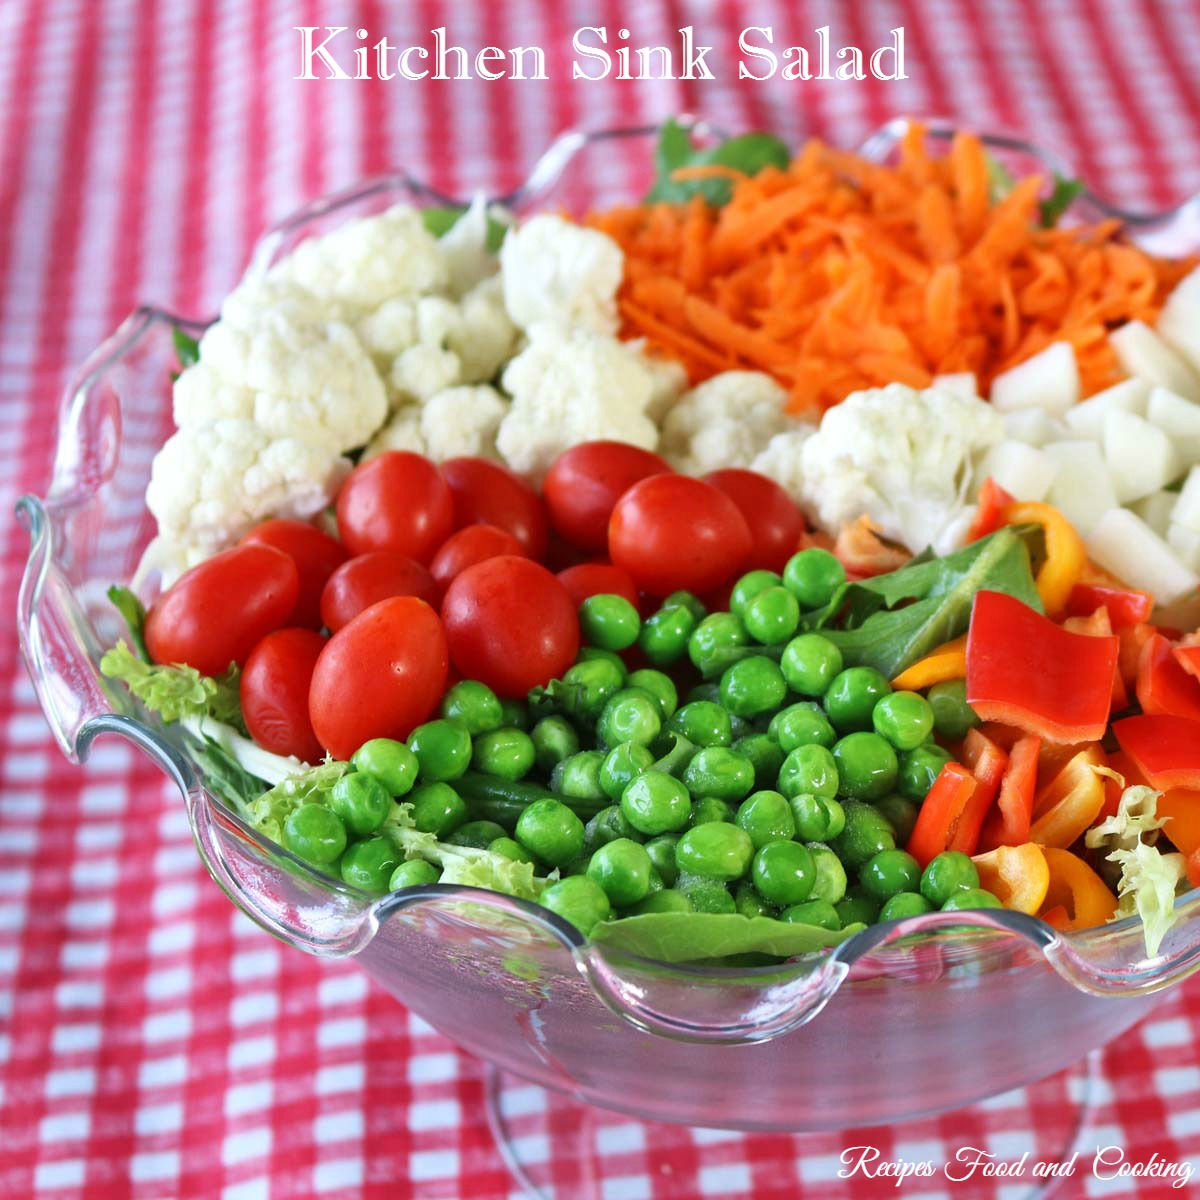 Kitchen Sink Salad